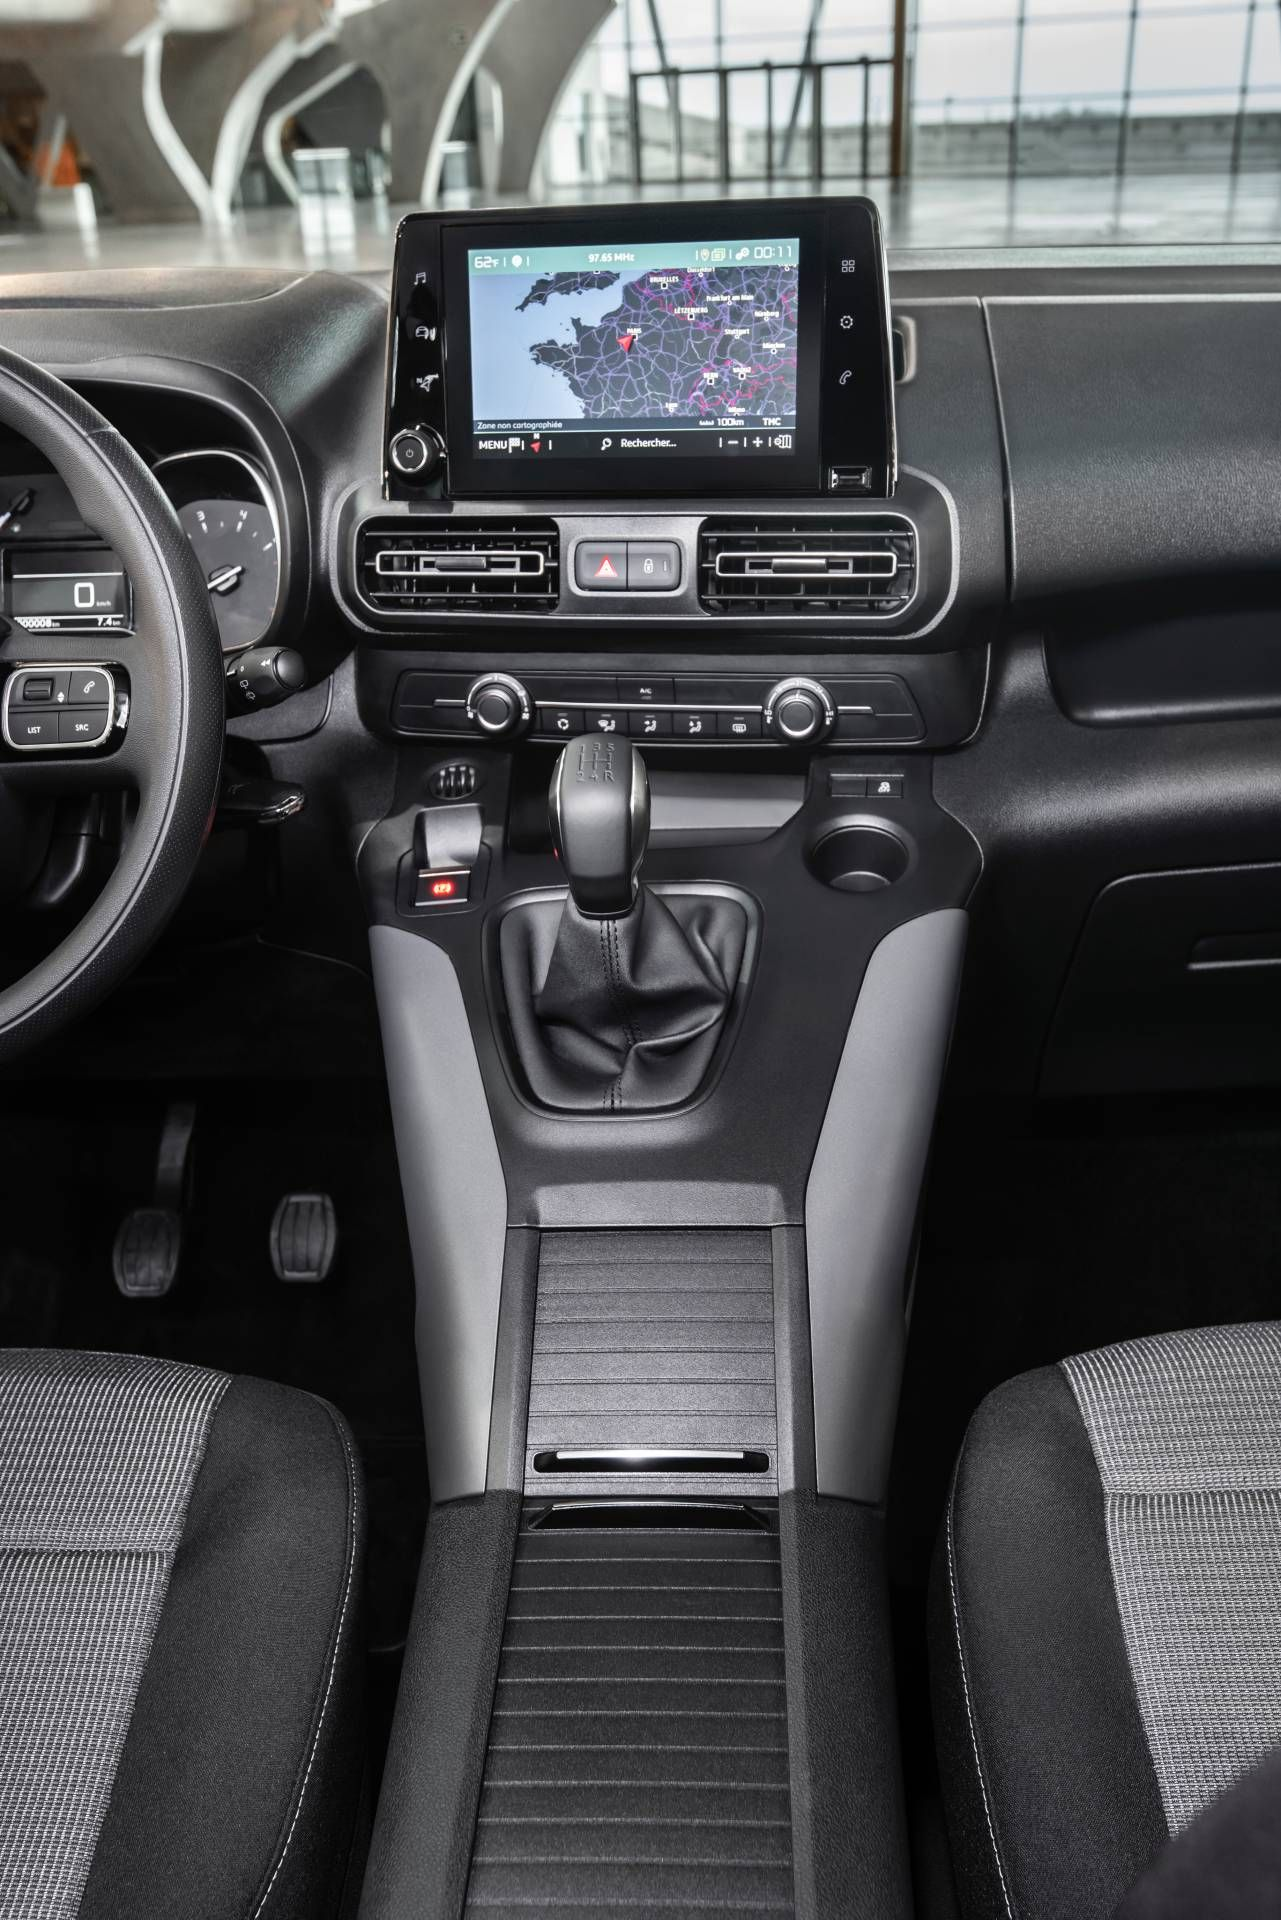 2020 Toyota Proace City Is A Rebadged Psa Built Compact Van Carscoops Toyota Commercial Vehicle Van